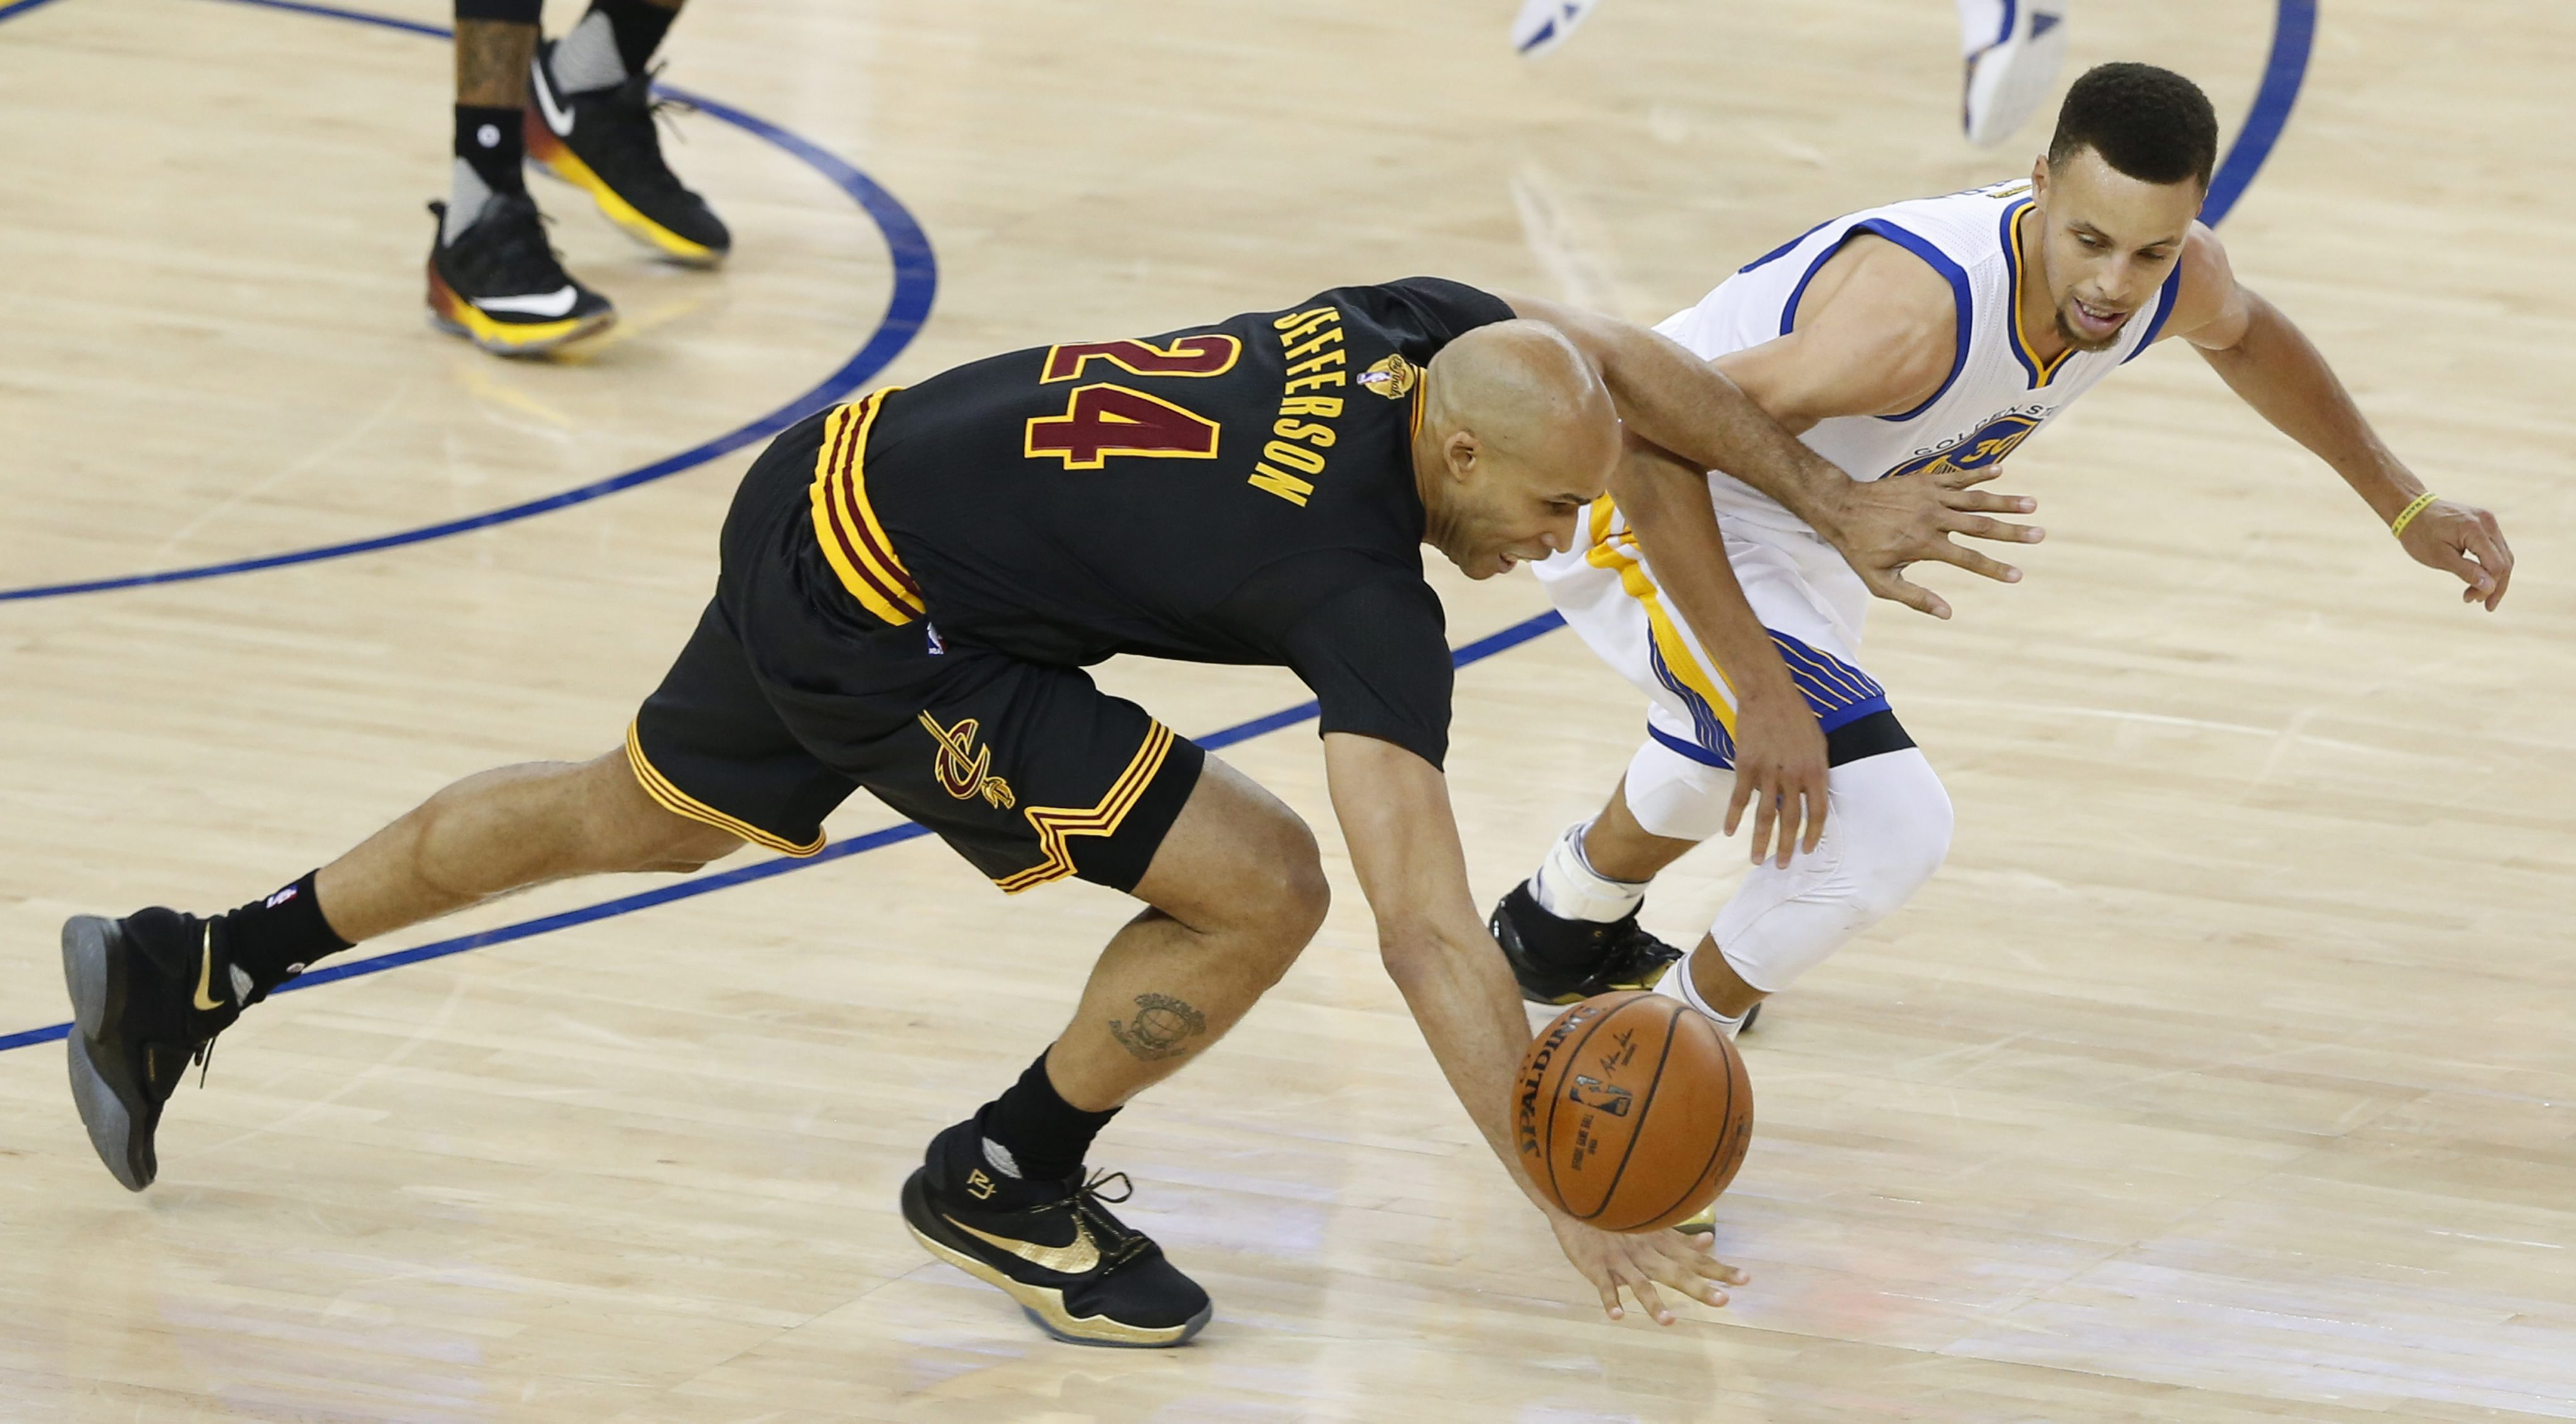 LWS115. Oakland (United States), 19/06/2016.- Cleveland Cavaliers' forward Richard Jefferson (L) goes for a loose ball against Golden State Warriors' guard Stephen Curry (R) during the first half of the NBA Finals game seven between Cleveland Cavaliers and Golden State Warriors at the Oracle Arena in Oakland, California, USA, 19 June 2016. (Baloncesto, Estados Unidos) EFE/EPA/JOHN G. MABANGLO CORBIS OUT